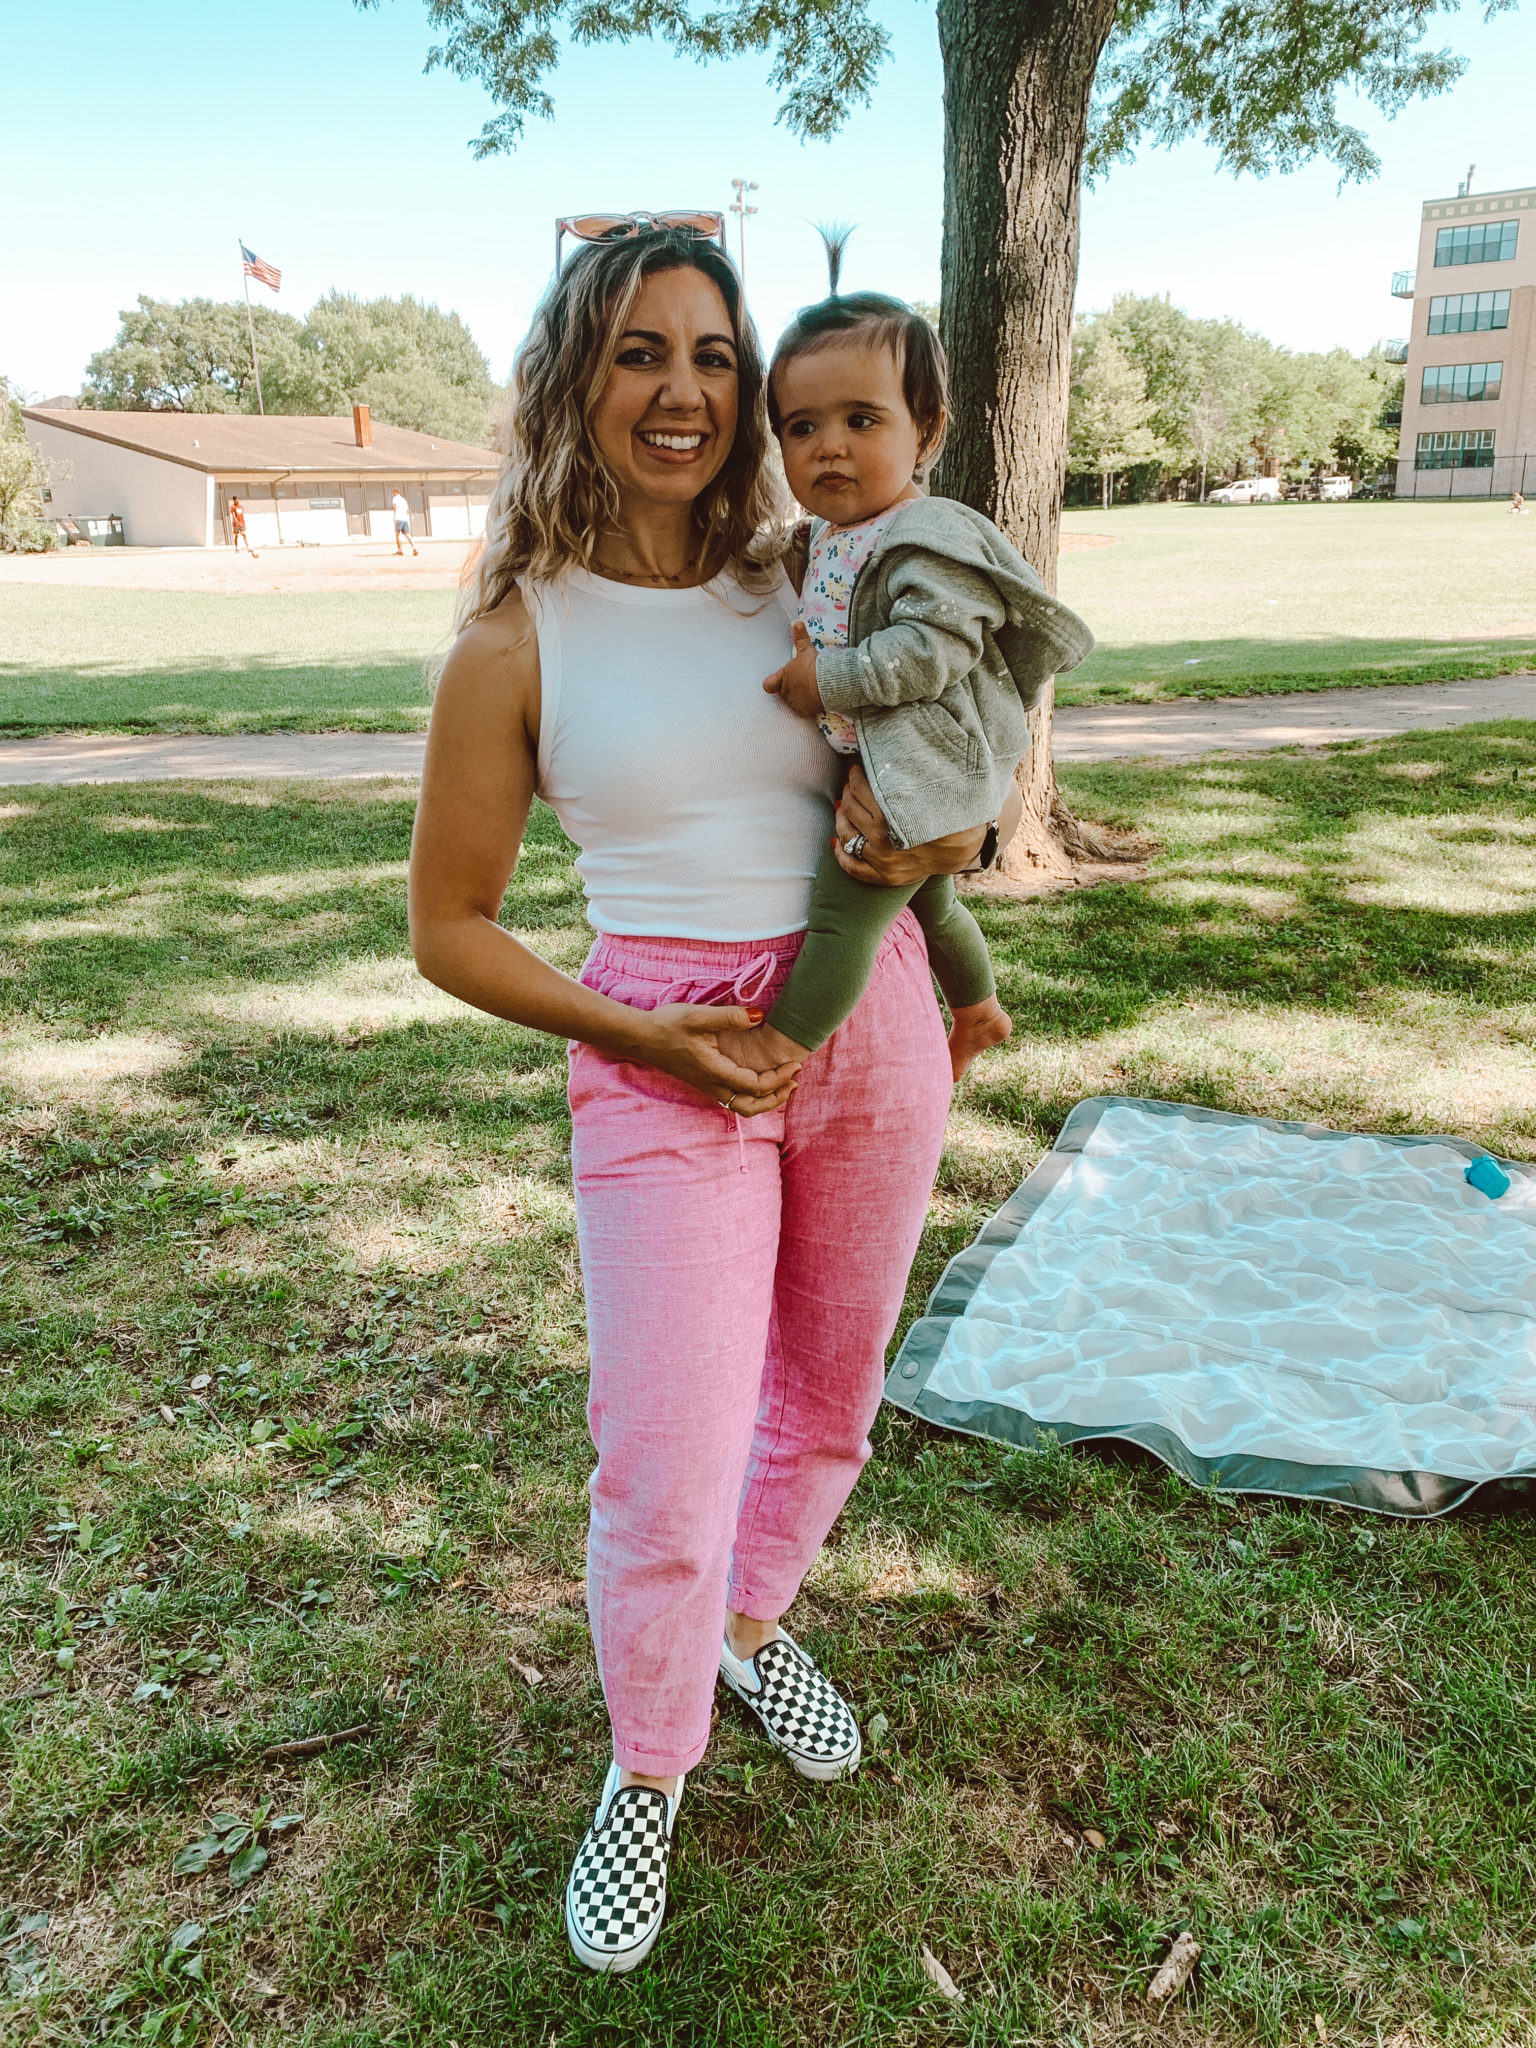 Linen Pants by popular Chicago fashion blog, Glass of Glam: image of a woman holding her baby daughter at a park and wearing a J. Crew LINEN-COTTON DRAWSTRING PANT, Target A New Day Women's Tank Top, and Nordstrom Classic Slip-On Sneaker VANS.